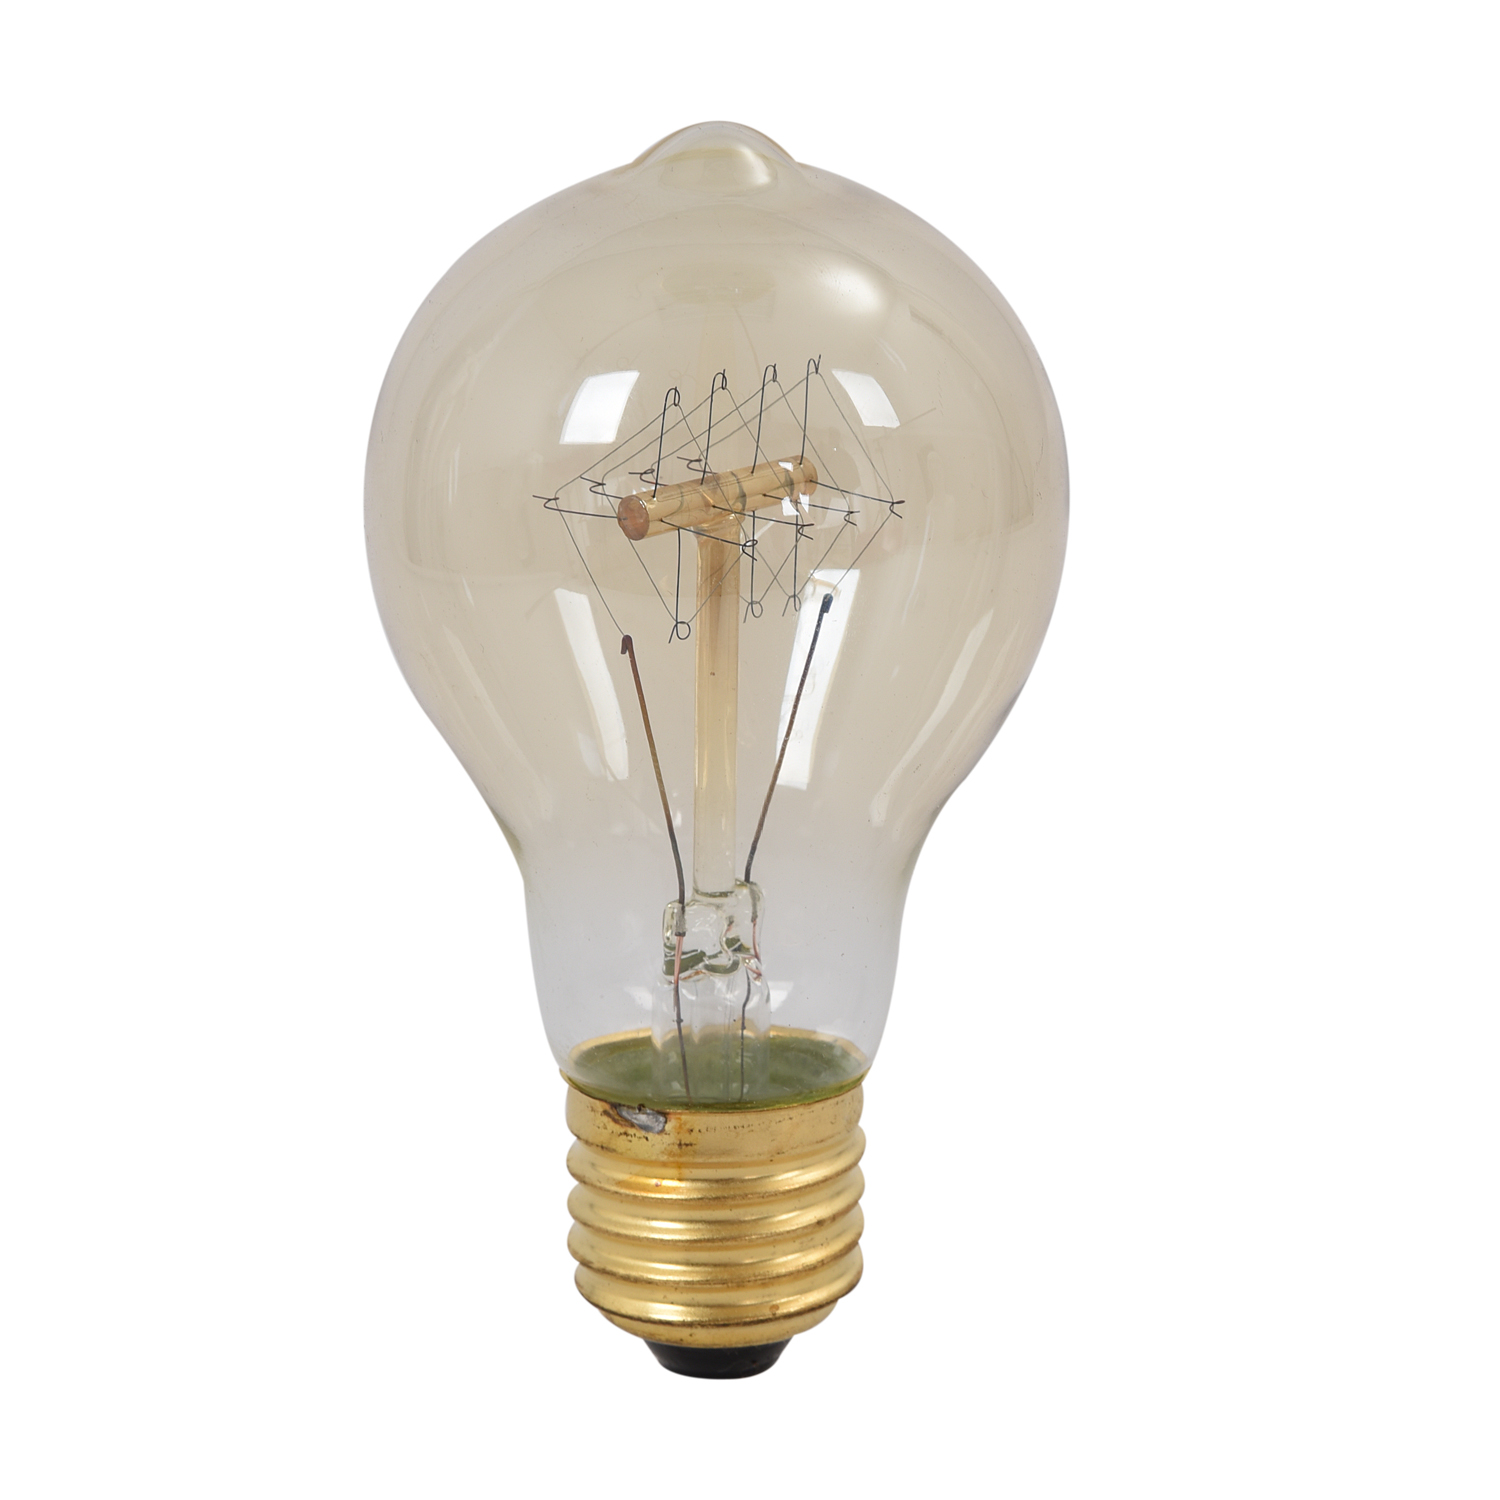 E27 40w vintage retro filament tungsten light bulb n3 ebay Tungsten light bulbs